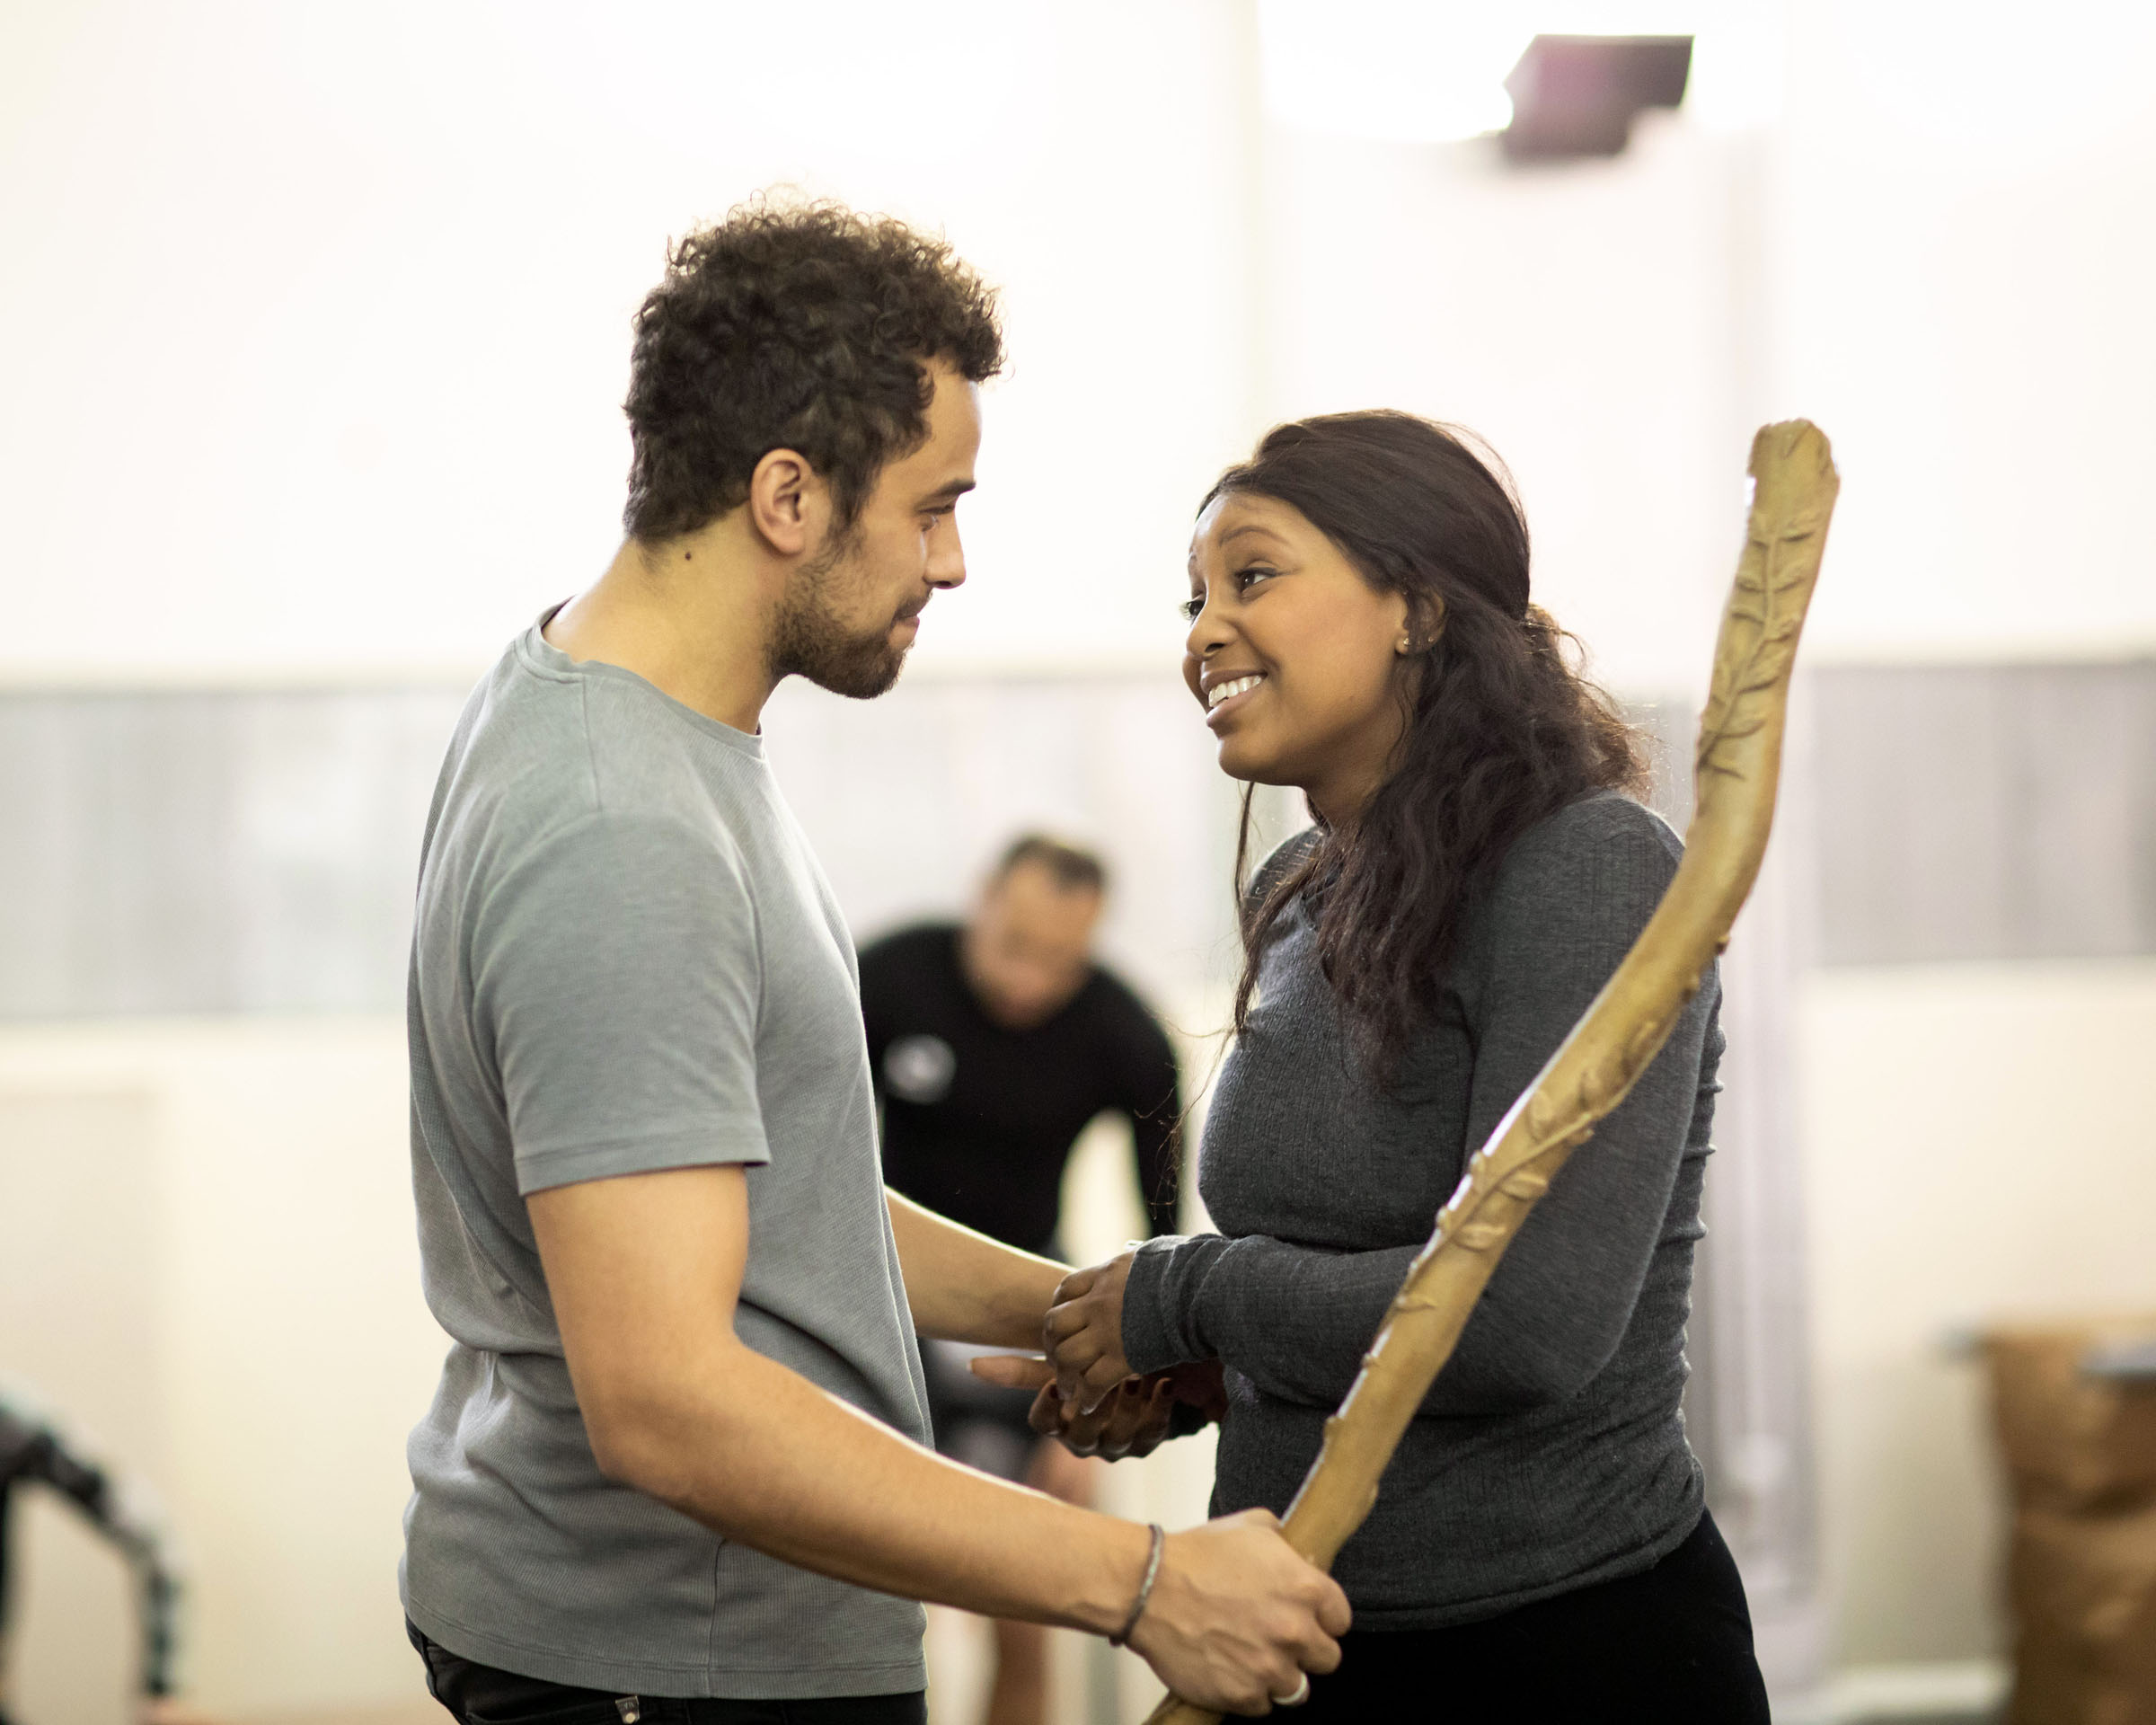 Luke Brady (Moses) and Alexia Khadime (Miriam) during rehearsals for The Prince of Egypt